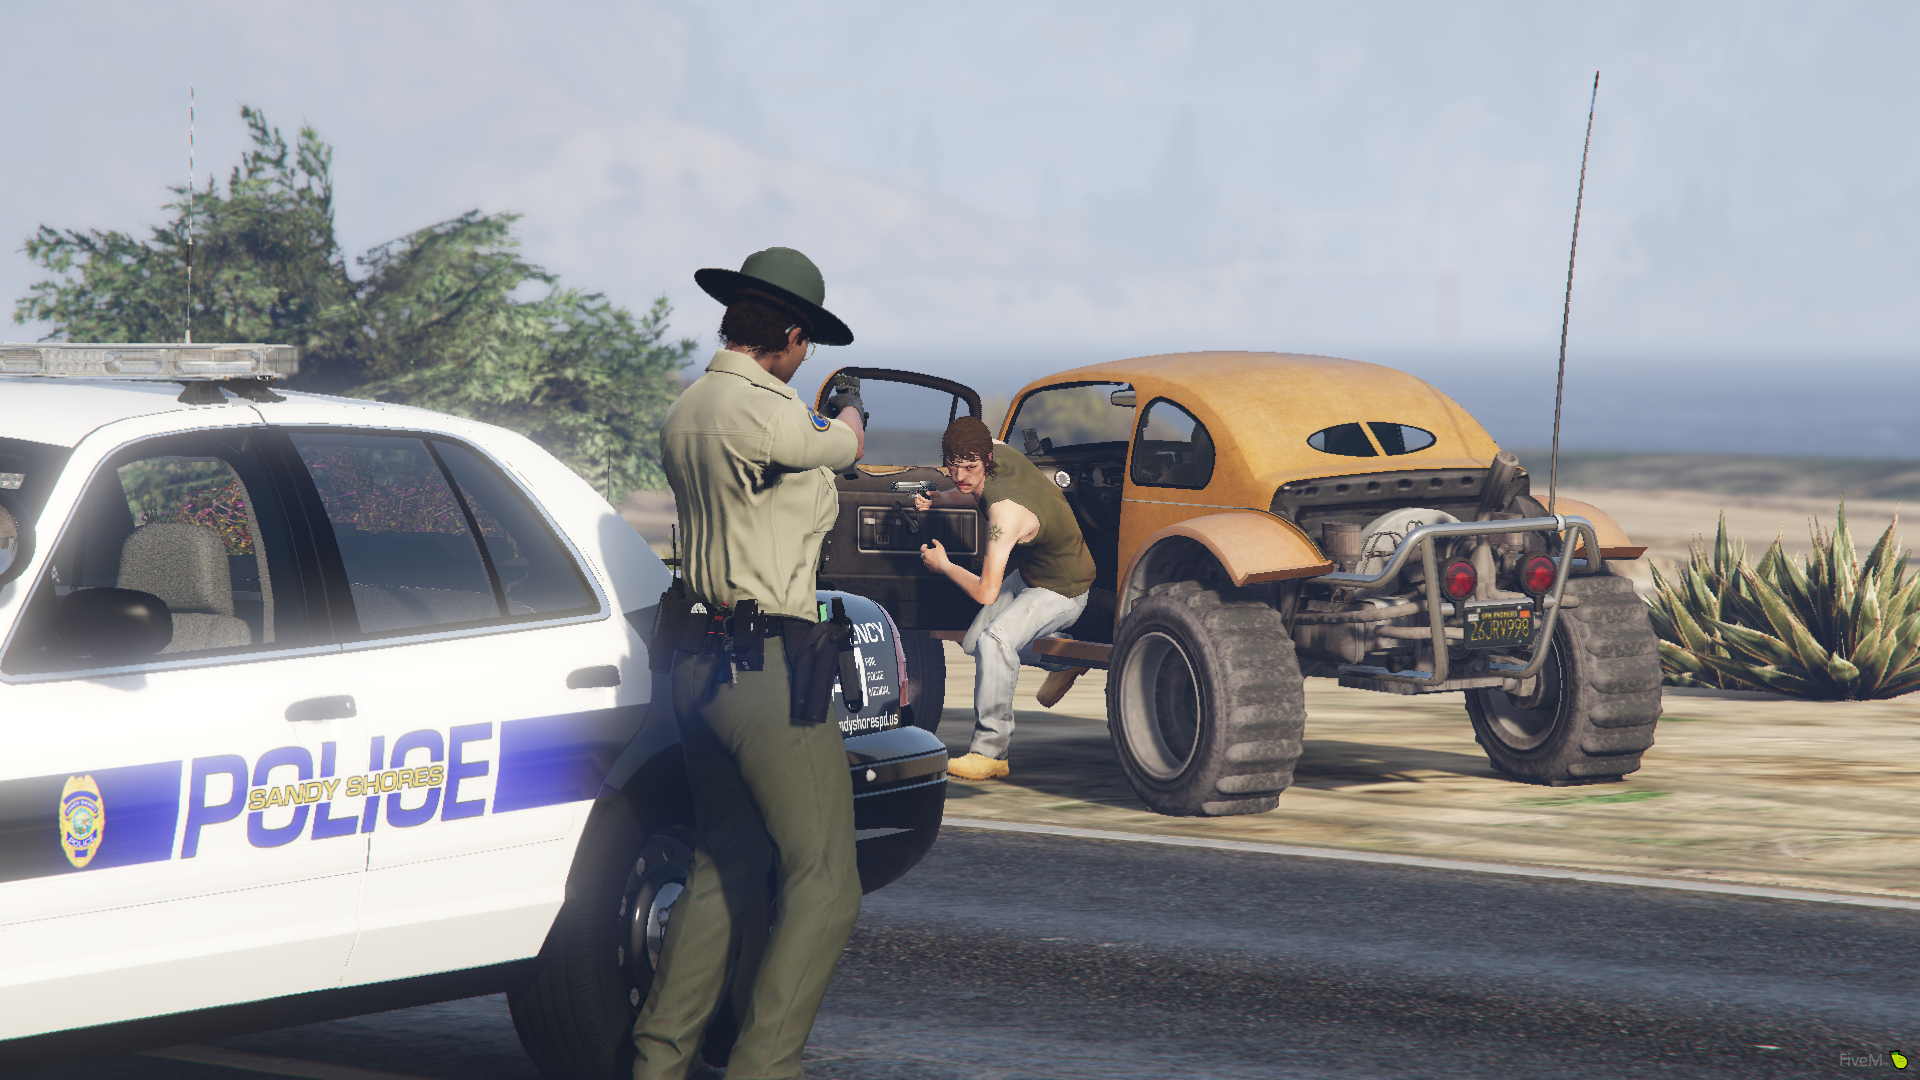 Sandy Shores PD - One at Gunpoint